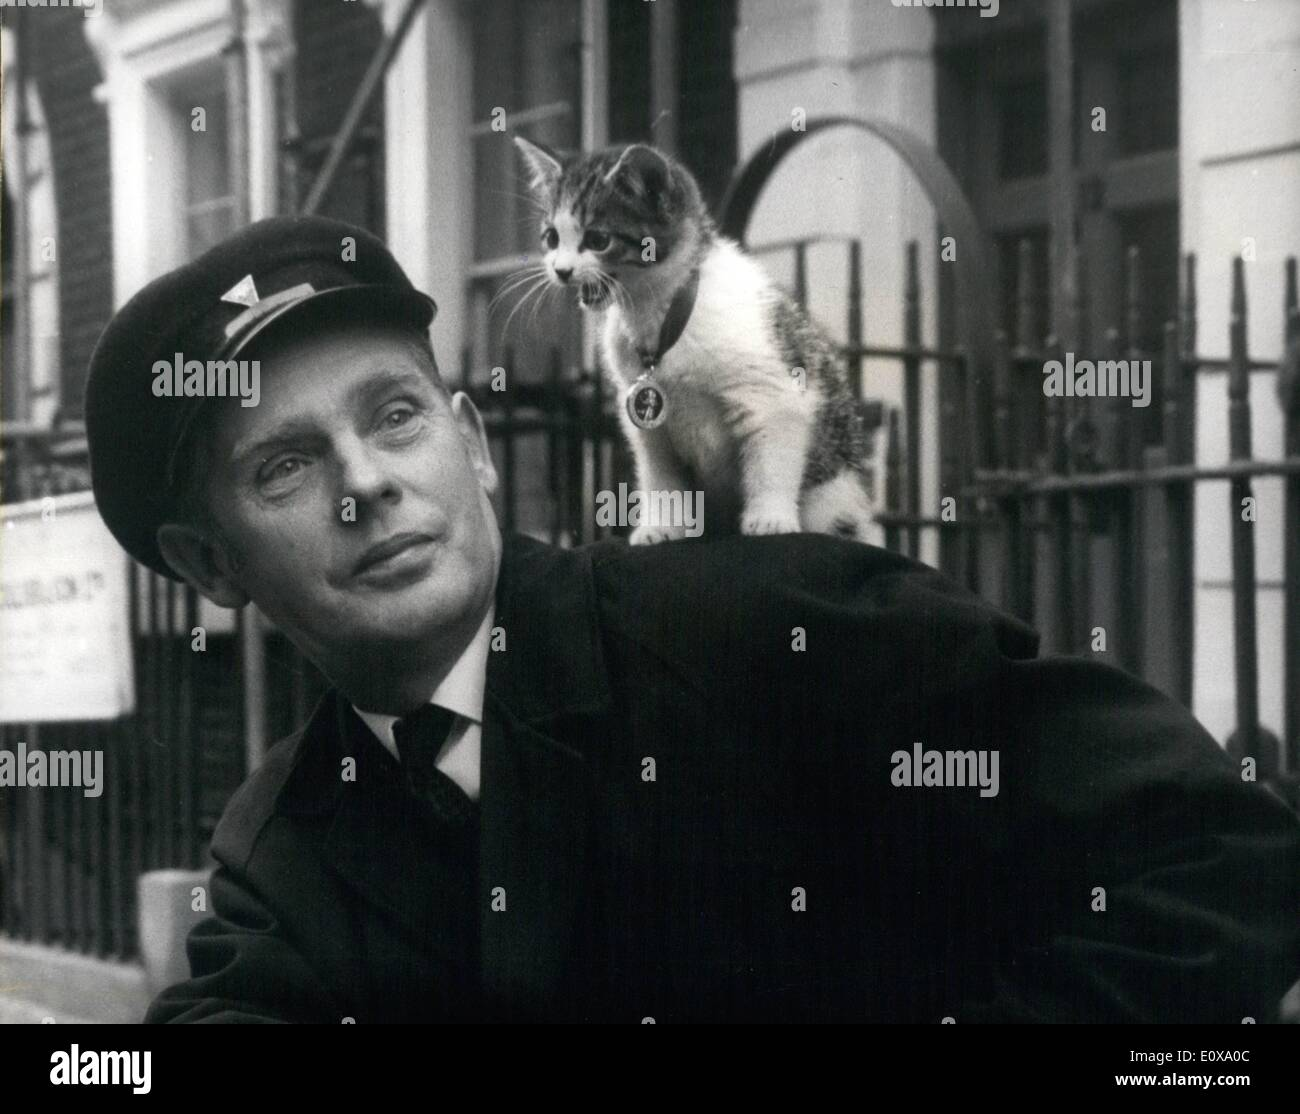 Dec. 12, 1965 - Holly The Kitten Goes To New Home By Rolls. Holly the kitten was pushed through the letter box of the Canine Defence League's headquarters in London. Around her neck was a 10s. note and a letter seeking the league to find her a good home. The league was inundated with offers for her. They decided to give the kitten to Mr. Reginald Kilby and his wife Patricia, who live in Amersham, Bucks. Holly was taken to her new home by Rolls Royce - Stock Image